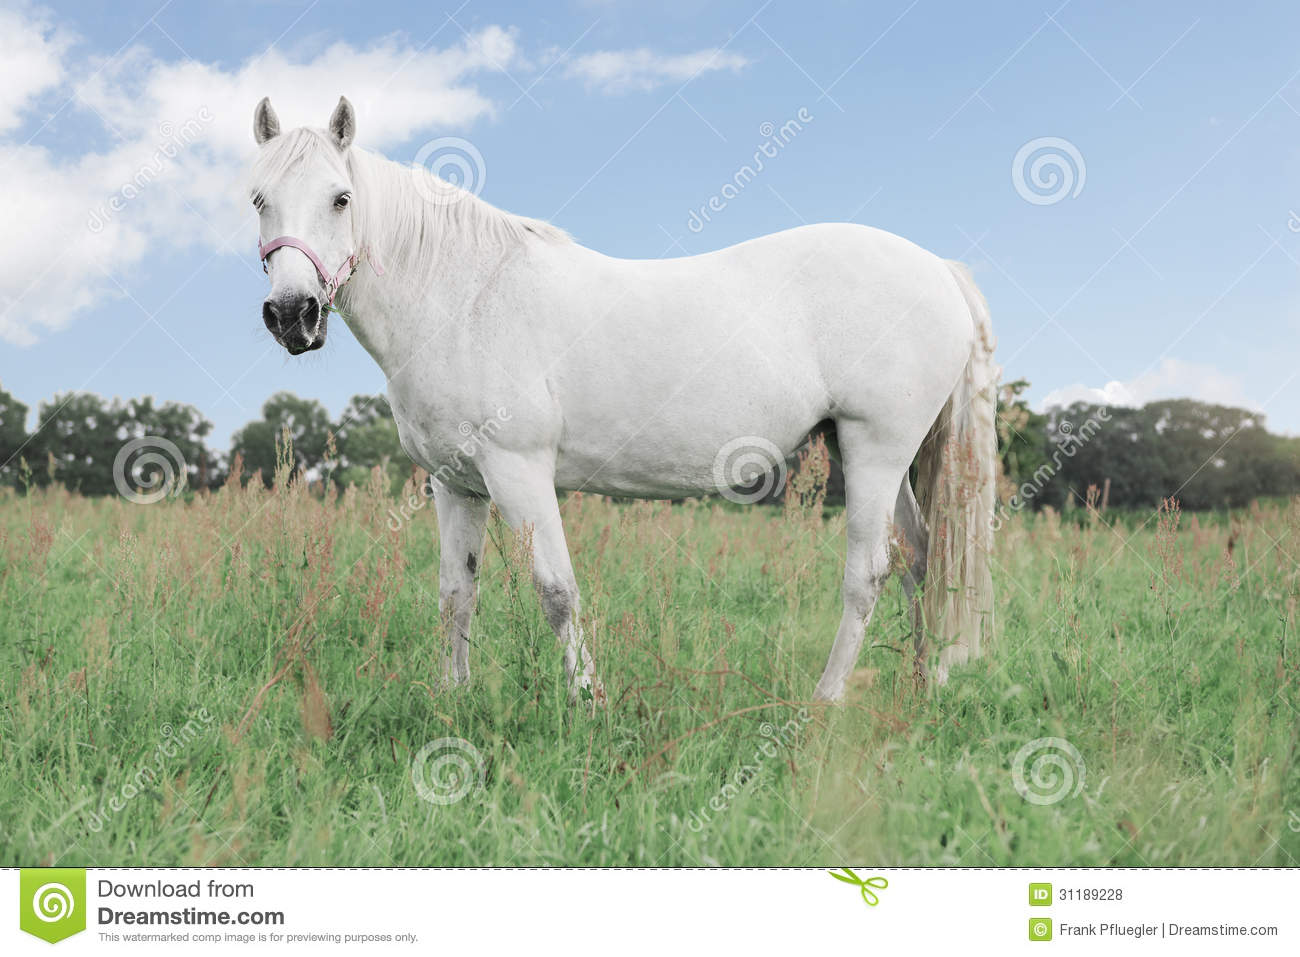 Beautiful White Horse Standing On Horizon Stock Image ... |White Horse Standing Up